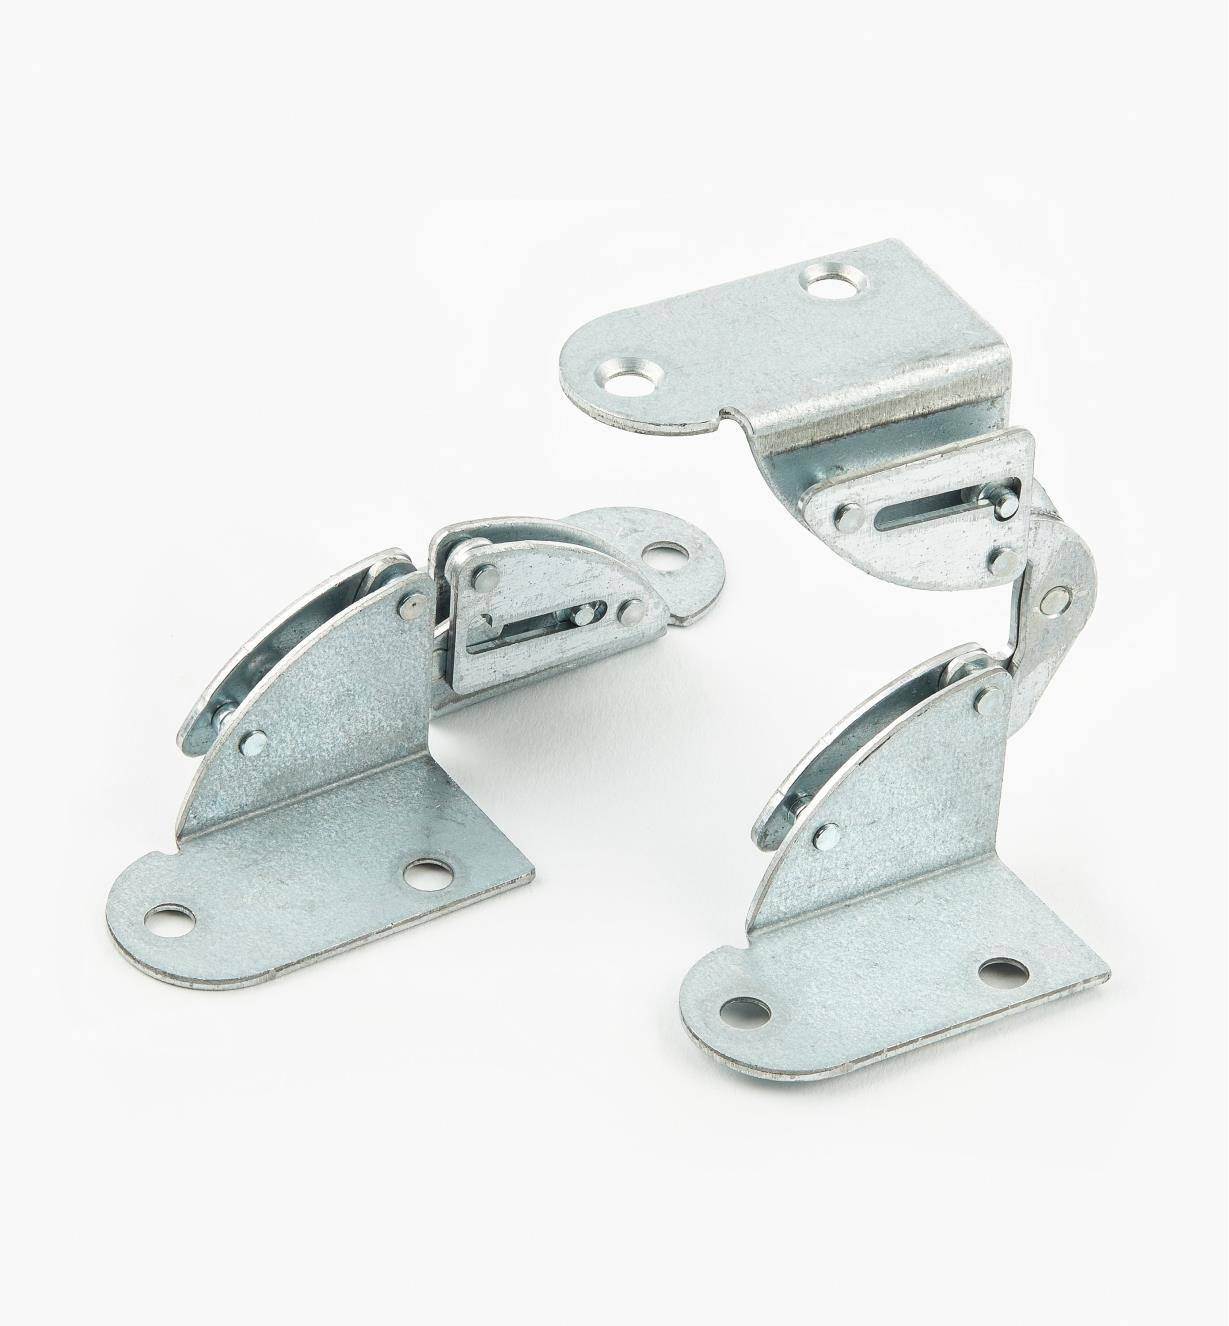 17K1552 - Folding Leaf Hinges, 25mm